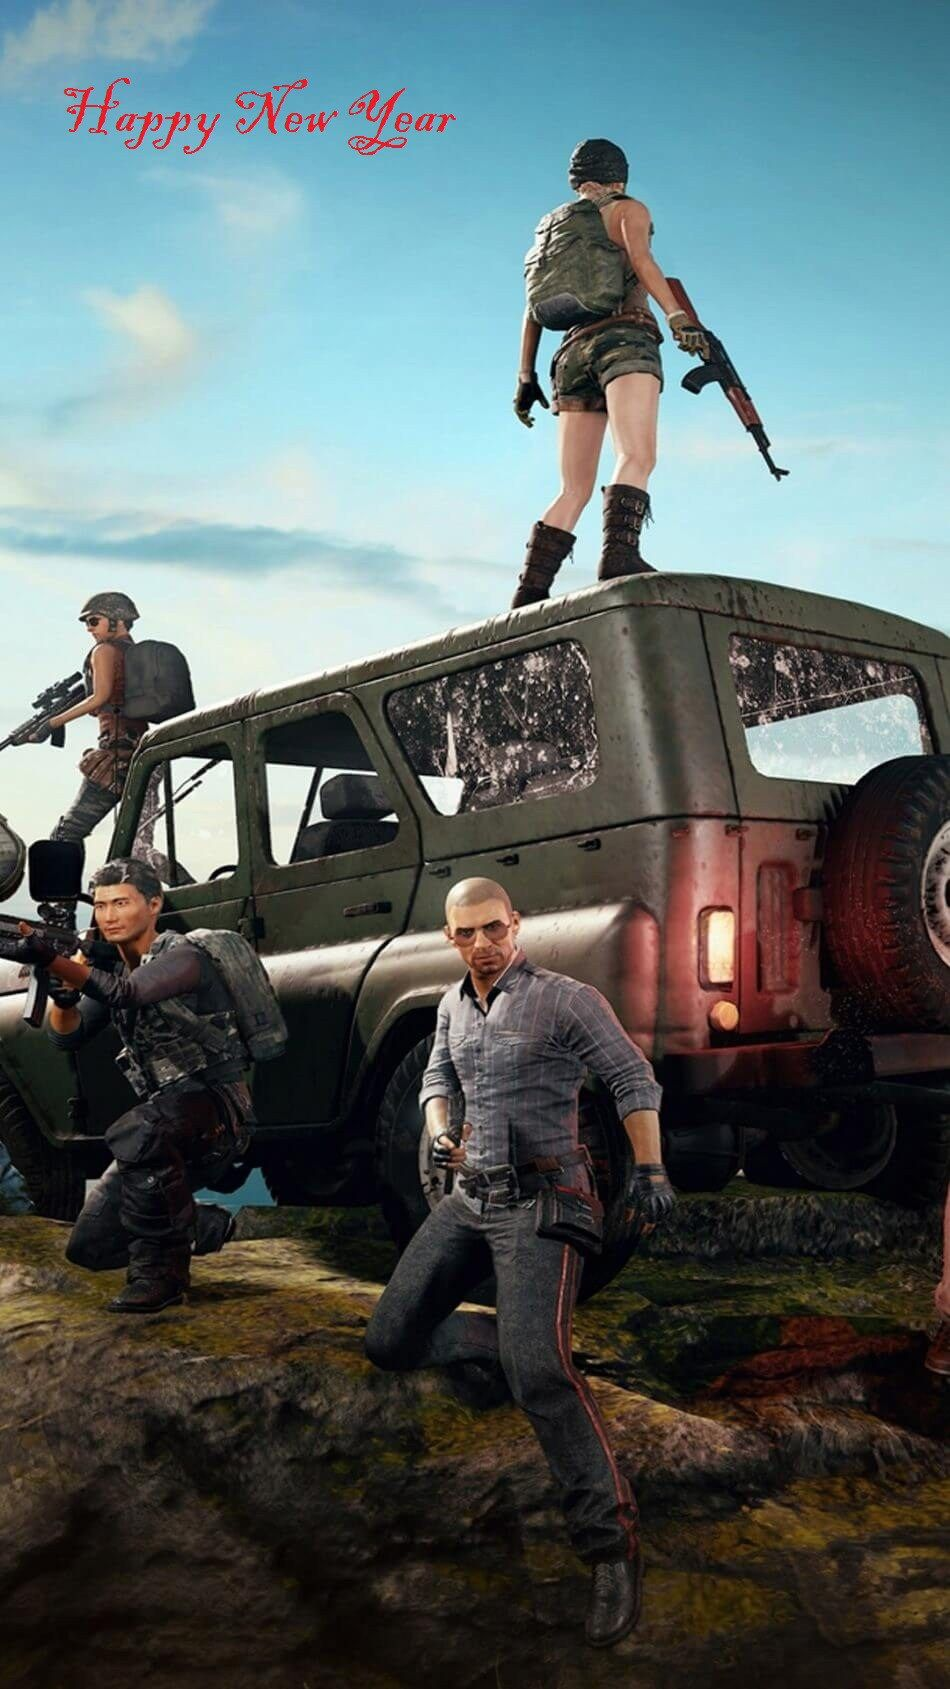 Happy New Year Pubg Messages With New Year Pubg Captions Mobile Wallpaper Mobile Legend Wallpaper Game Wallpaper Iphone